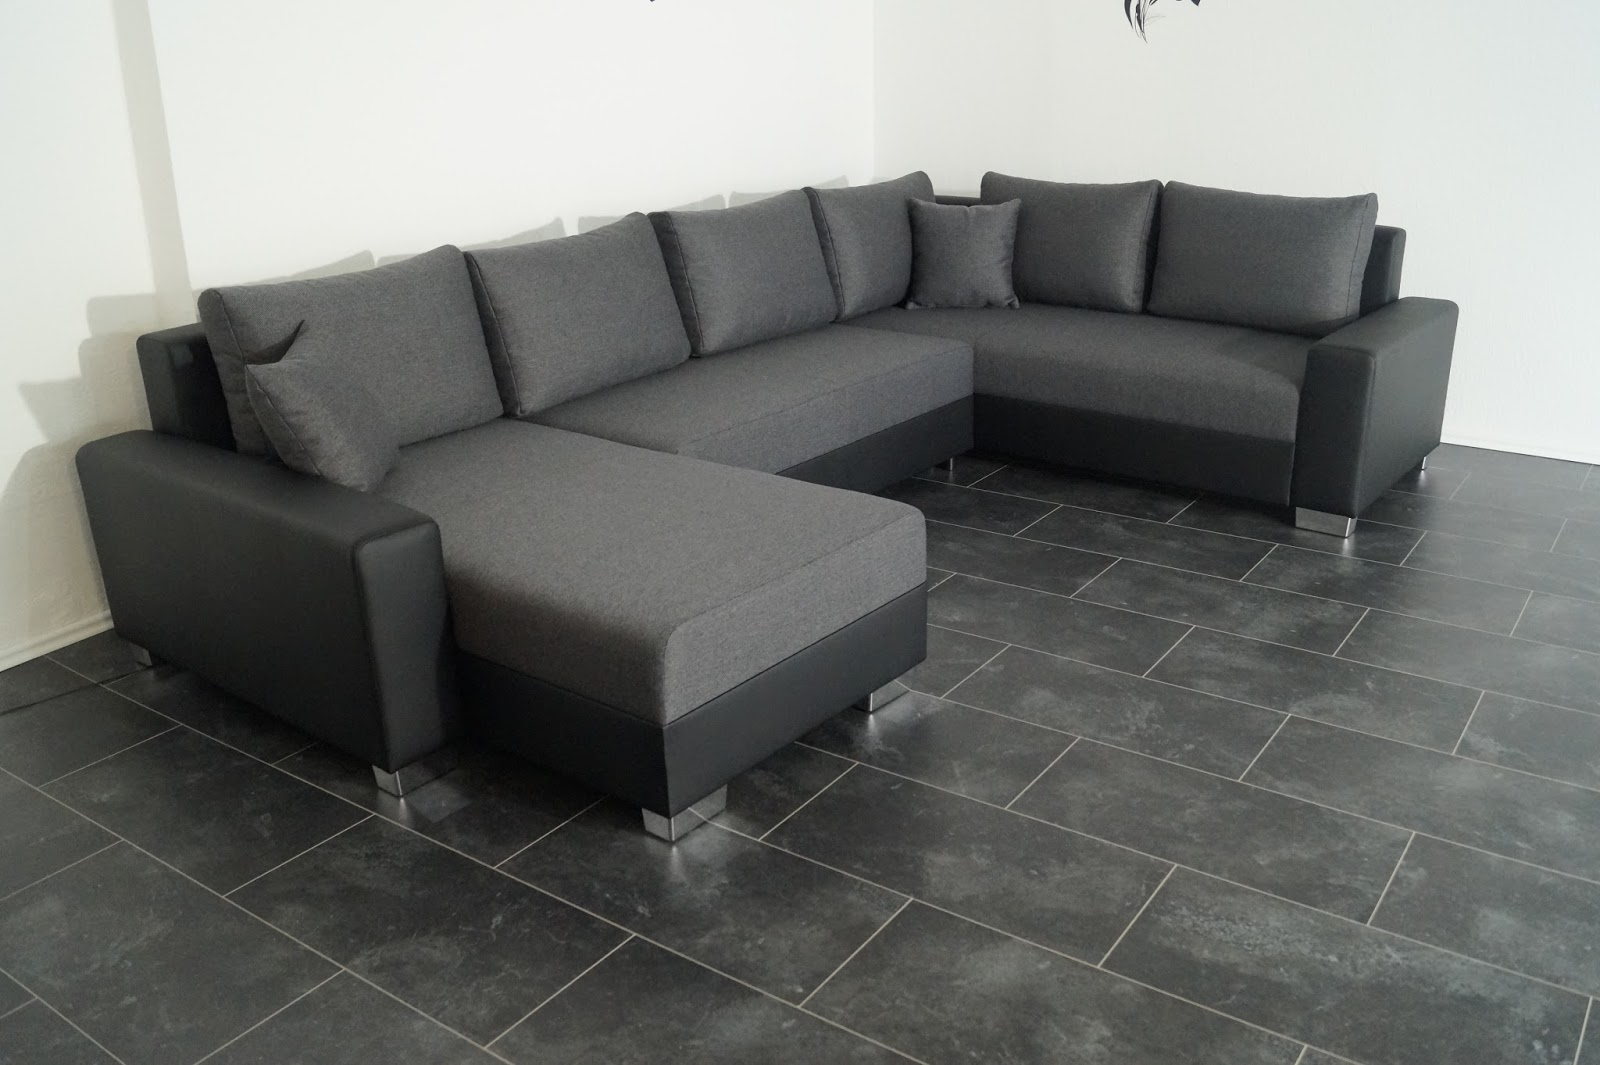 Bettsofa Xl Xl Sofa De Bettsofa Schlafcouch Sofa Couch